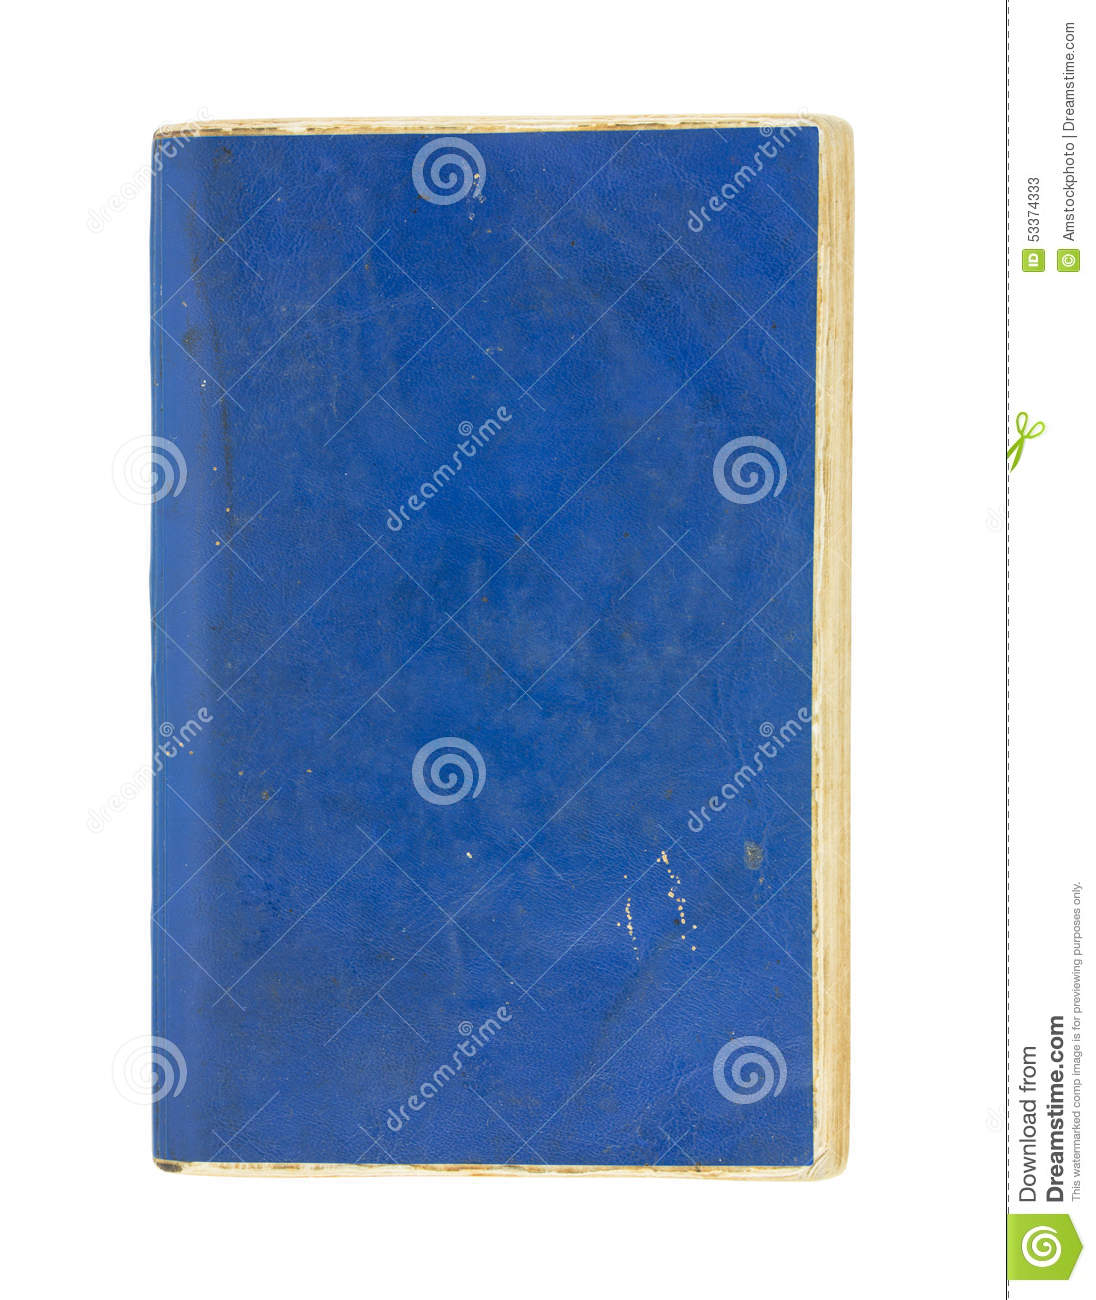 Blue Cover Cookbook : Old book isolated on white royalty free stock photo